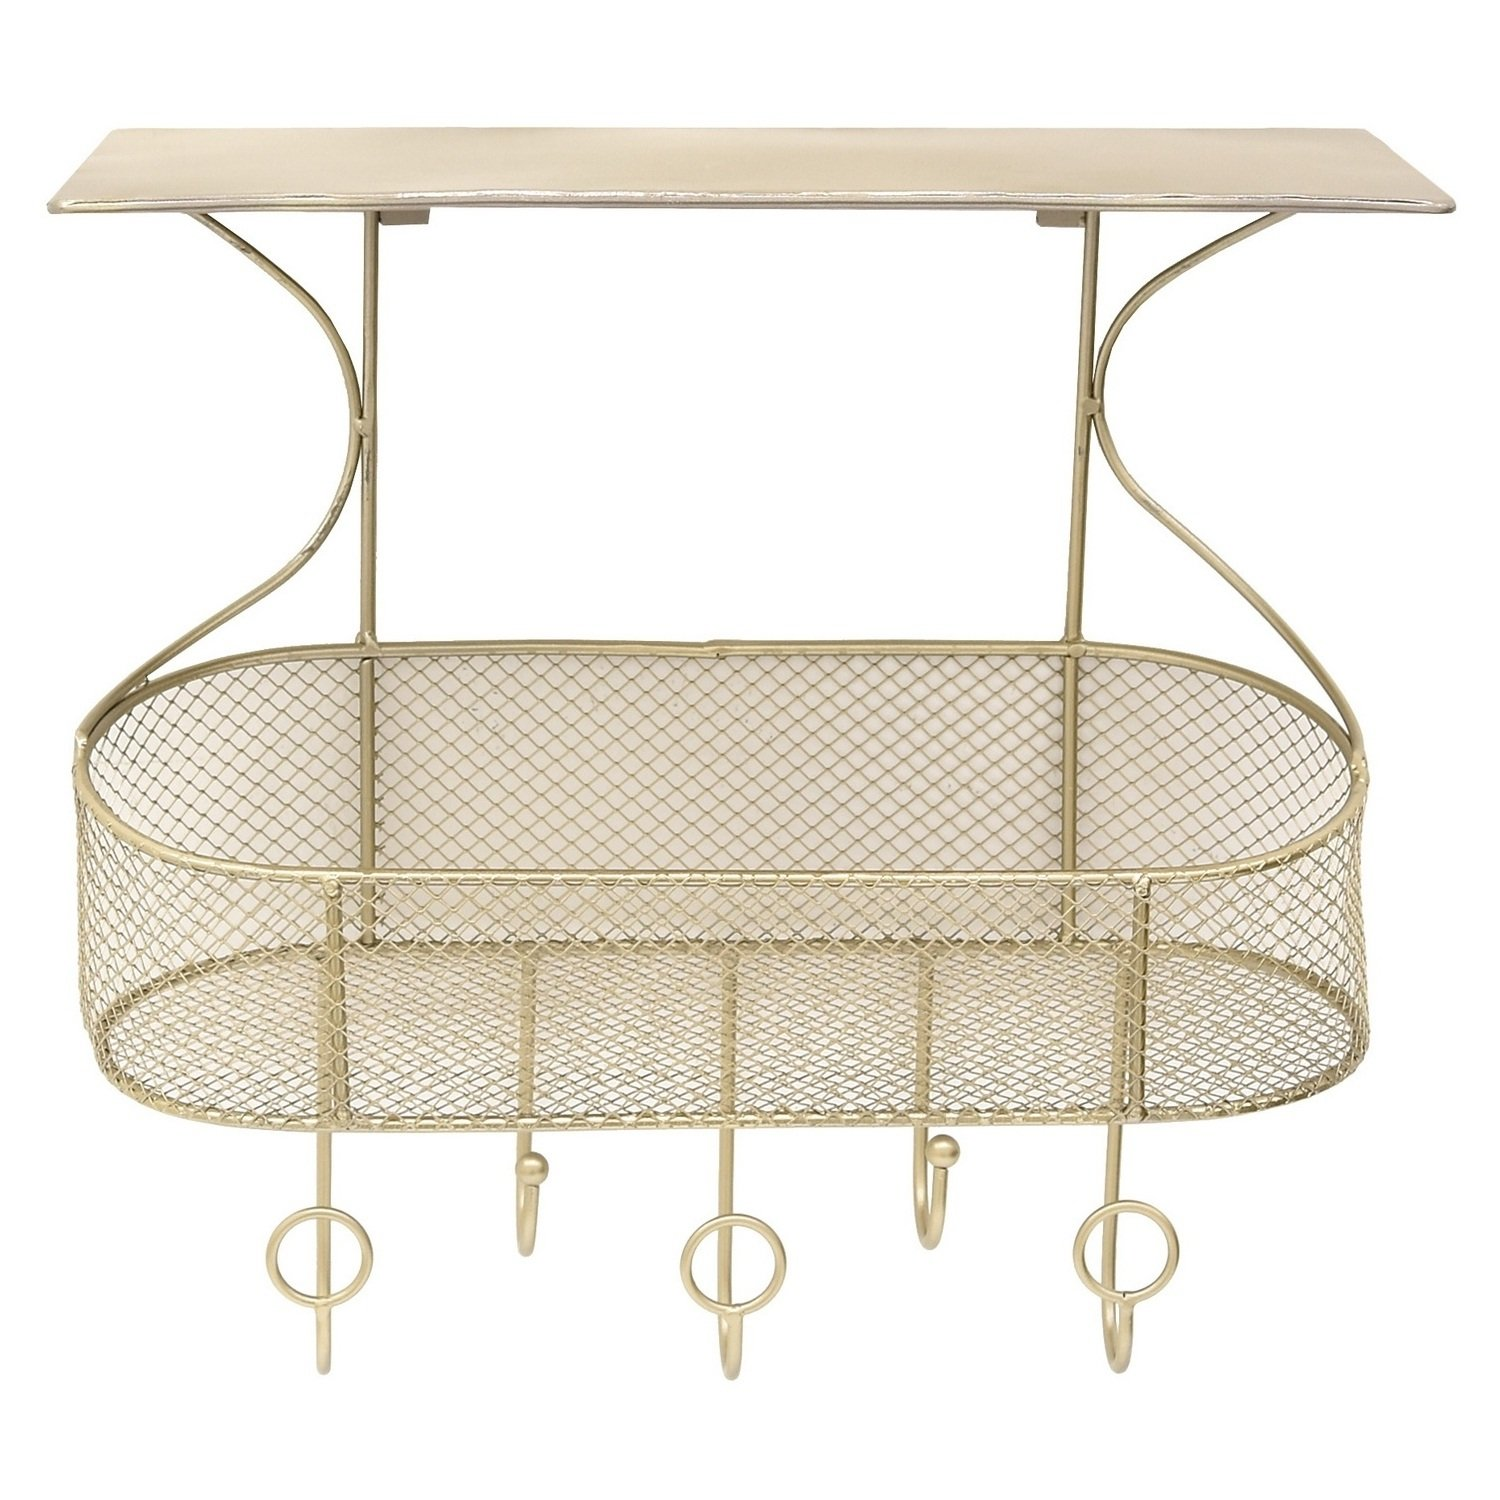 Metal Wall Storage Rack,Gold,Exudes Rustic Charm & Blends into an Industrial or Farmhouse-Inspired Space,Use it to Hang Outdoor Gears or in Kitchen for Spices Along with Oven Mitts & Aprons